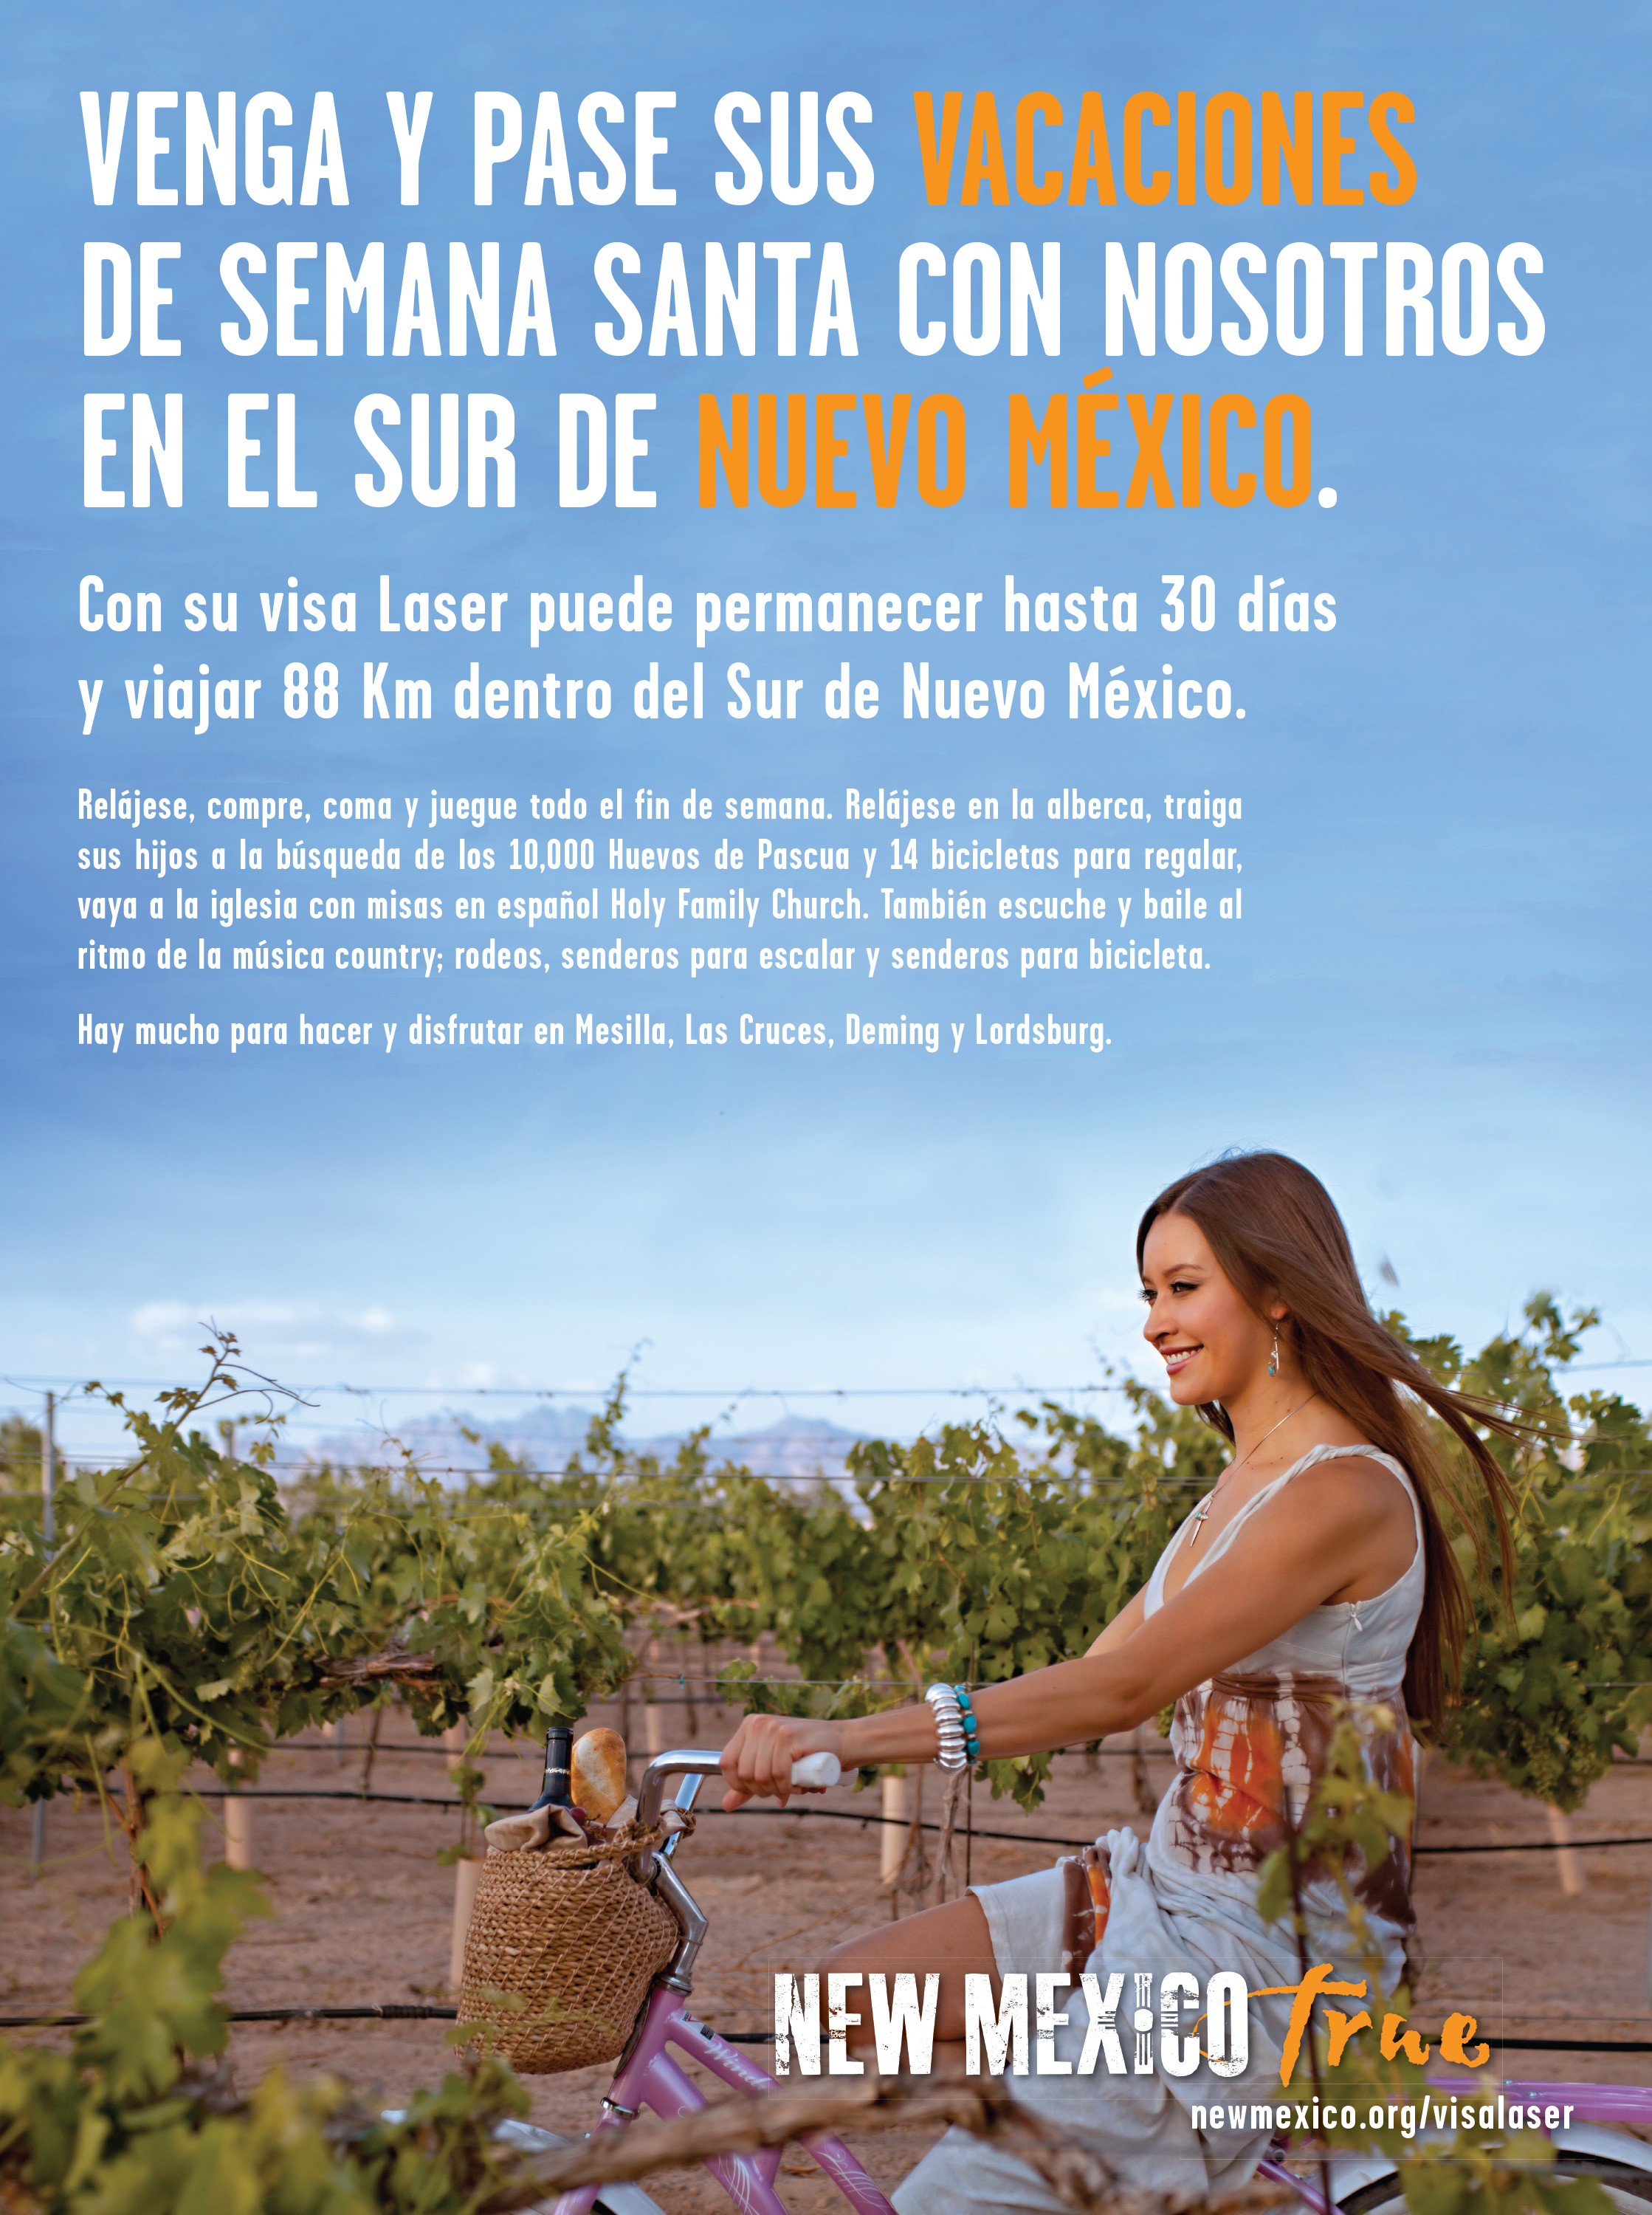 Informational Ad marketing Mexican Nationals to Visit southern New Mexico.